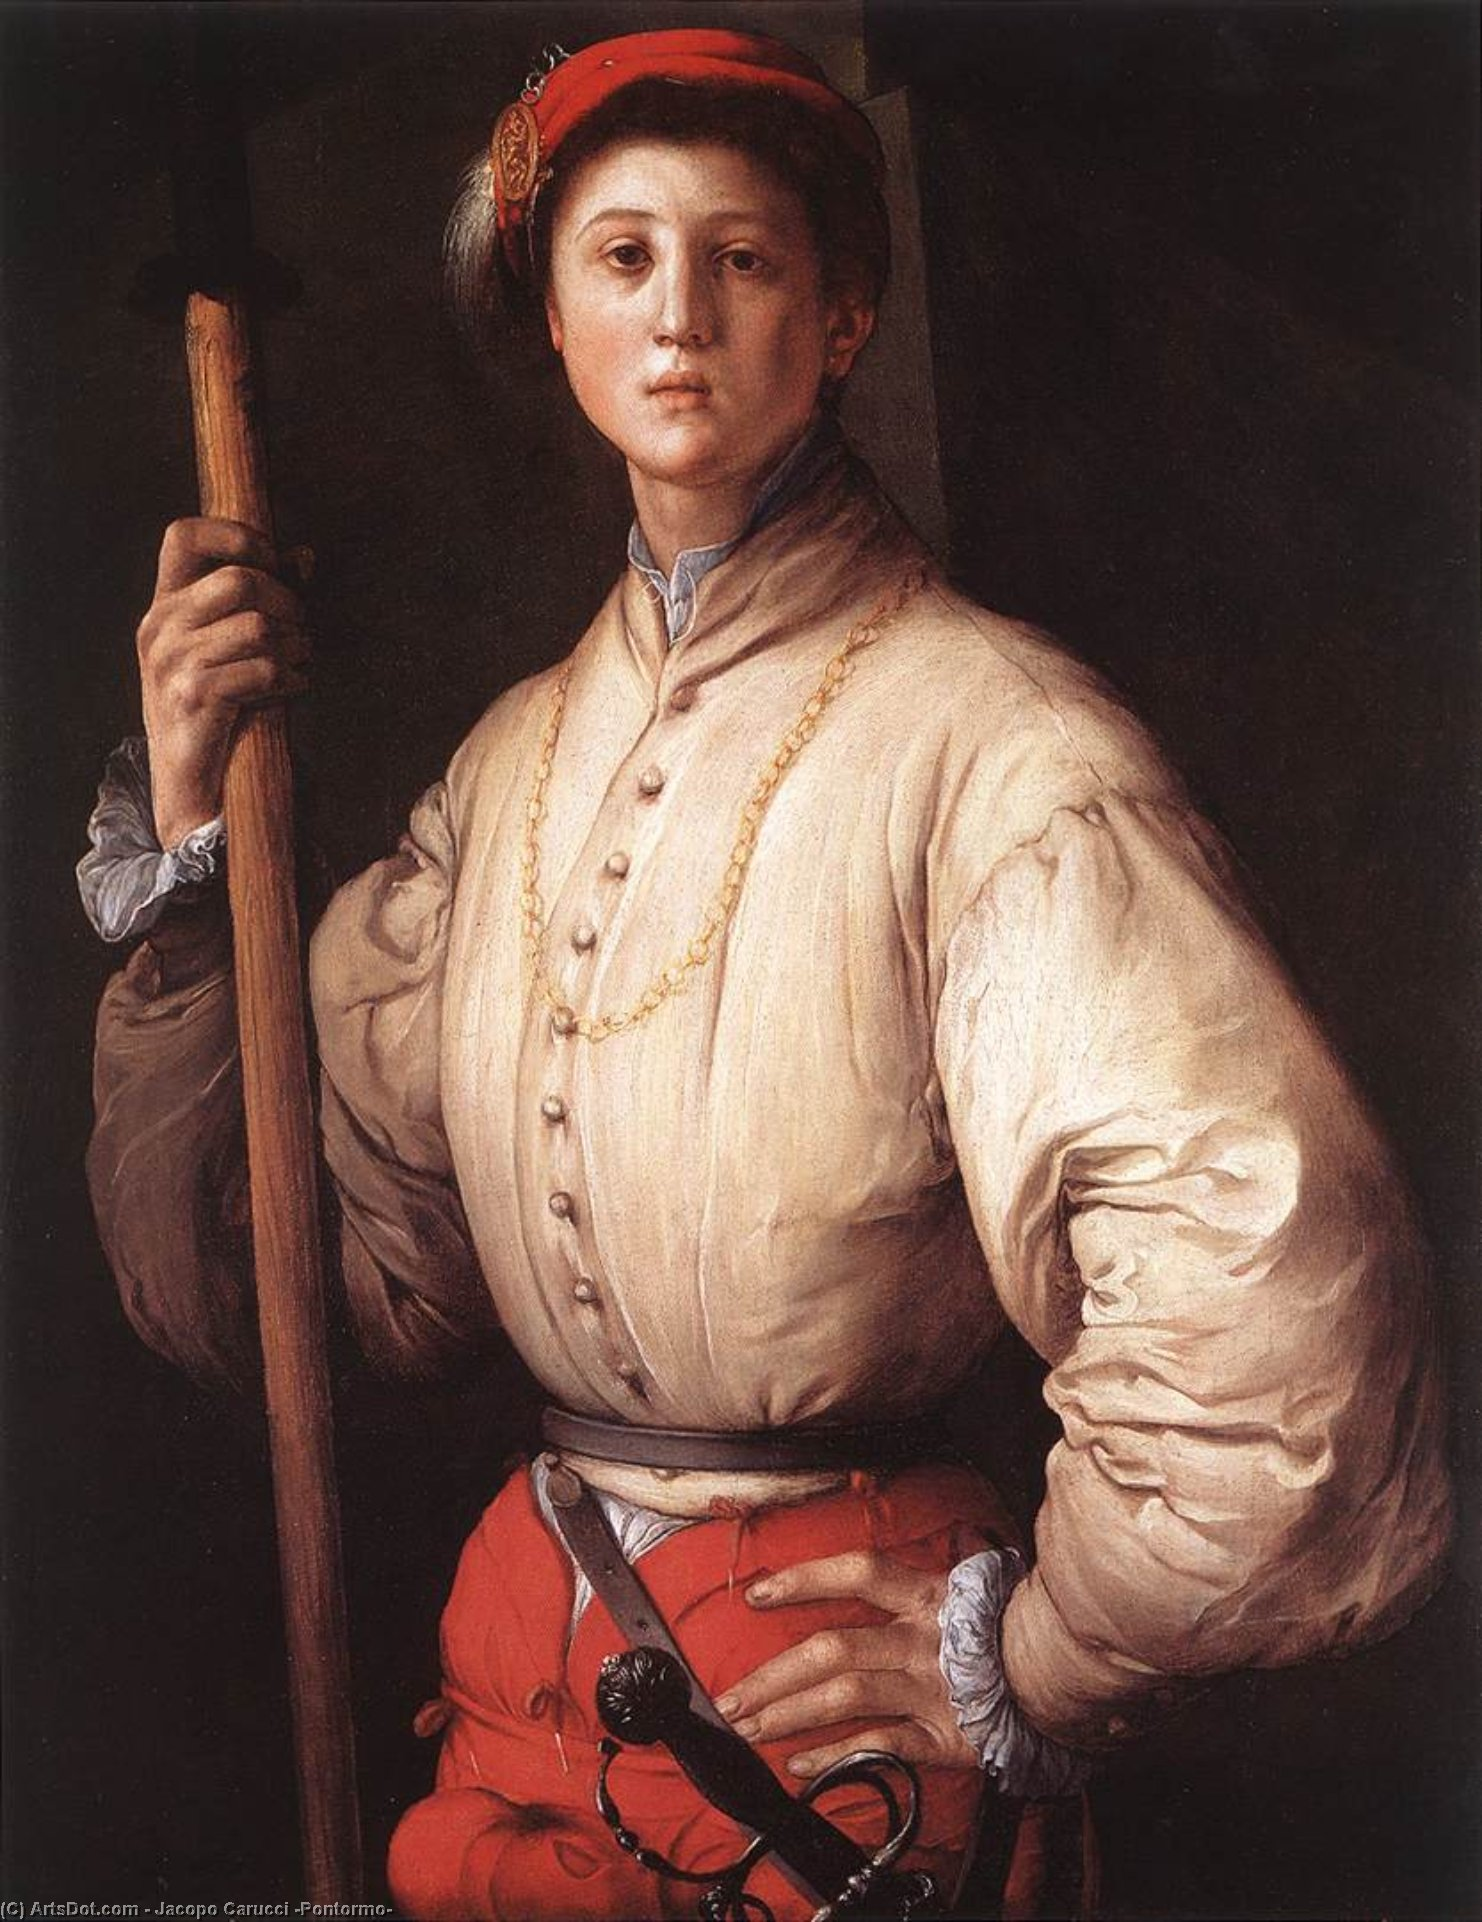 Wikioo.org - The Encyclopedia of Fine Arts - Painting, Artwork by Jacopo Carucci (Pontormo) - Halberdier